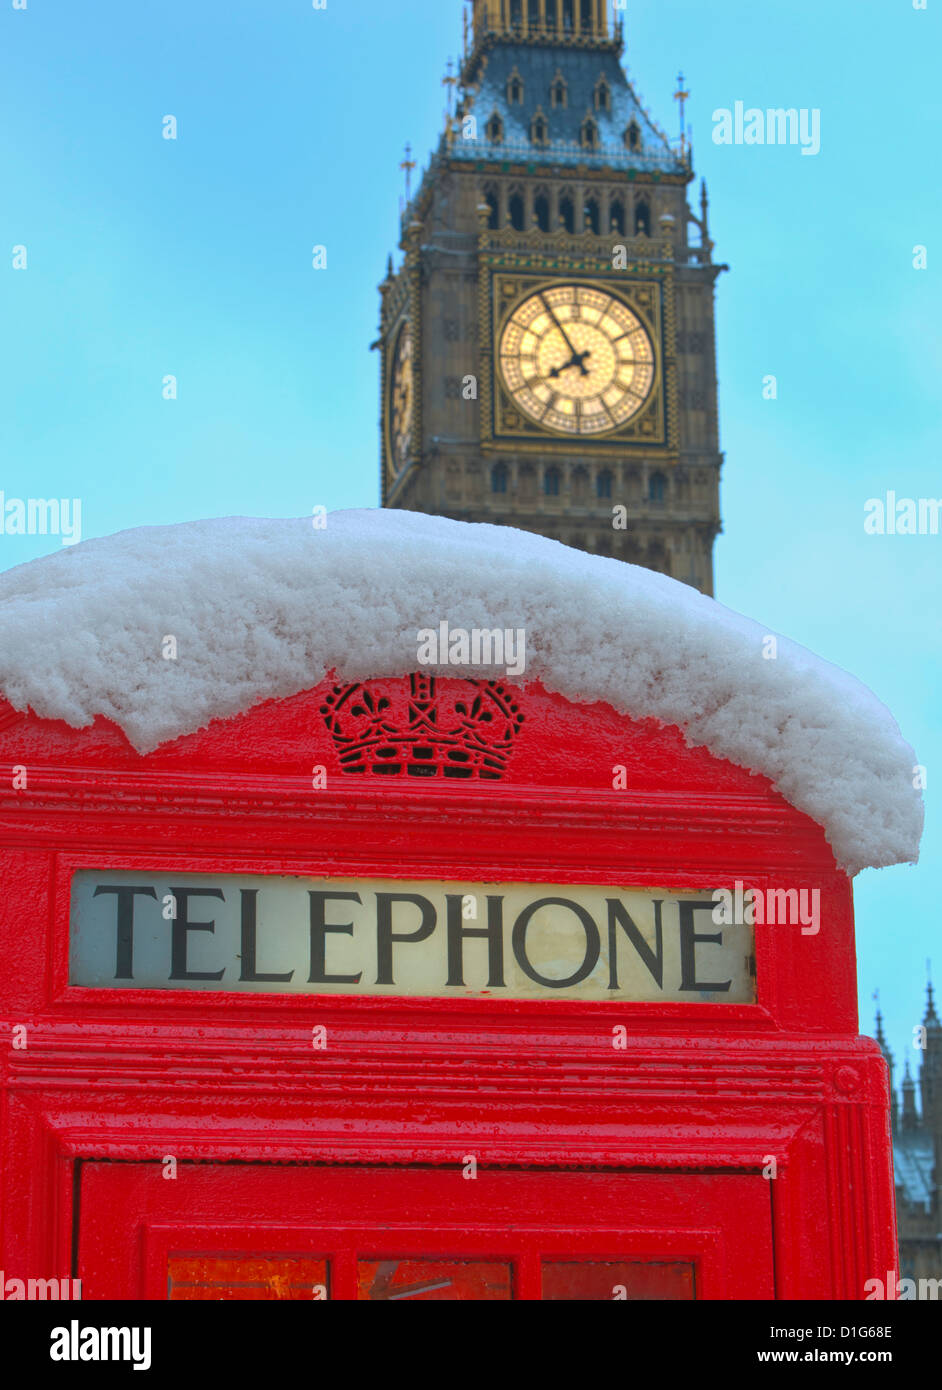 Red phone box and Big Ben in snow, Parliament Square, London, England, United Kingdom, Europe - Stock Image